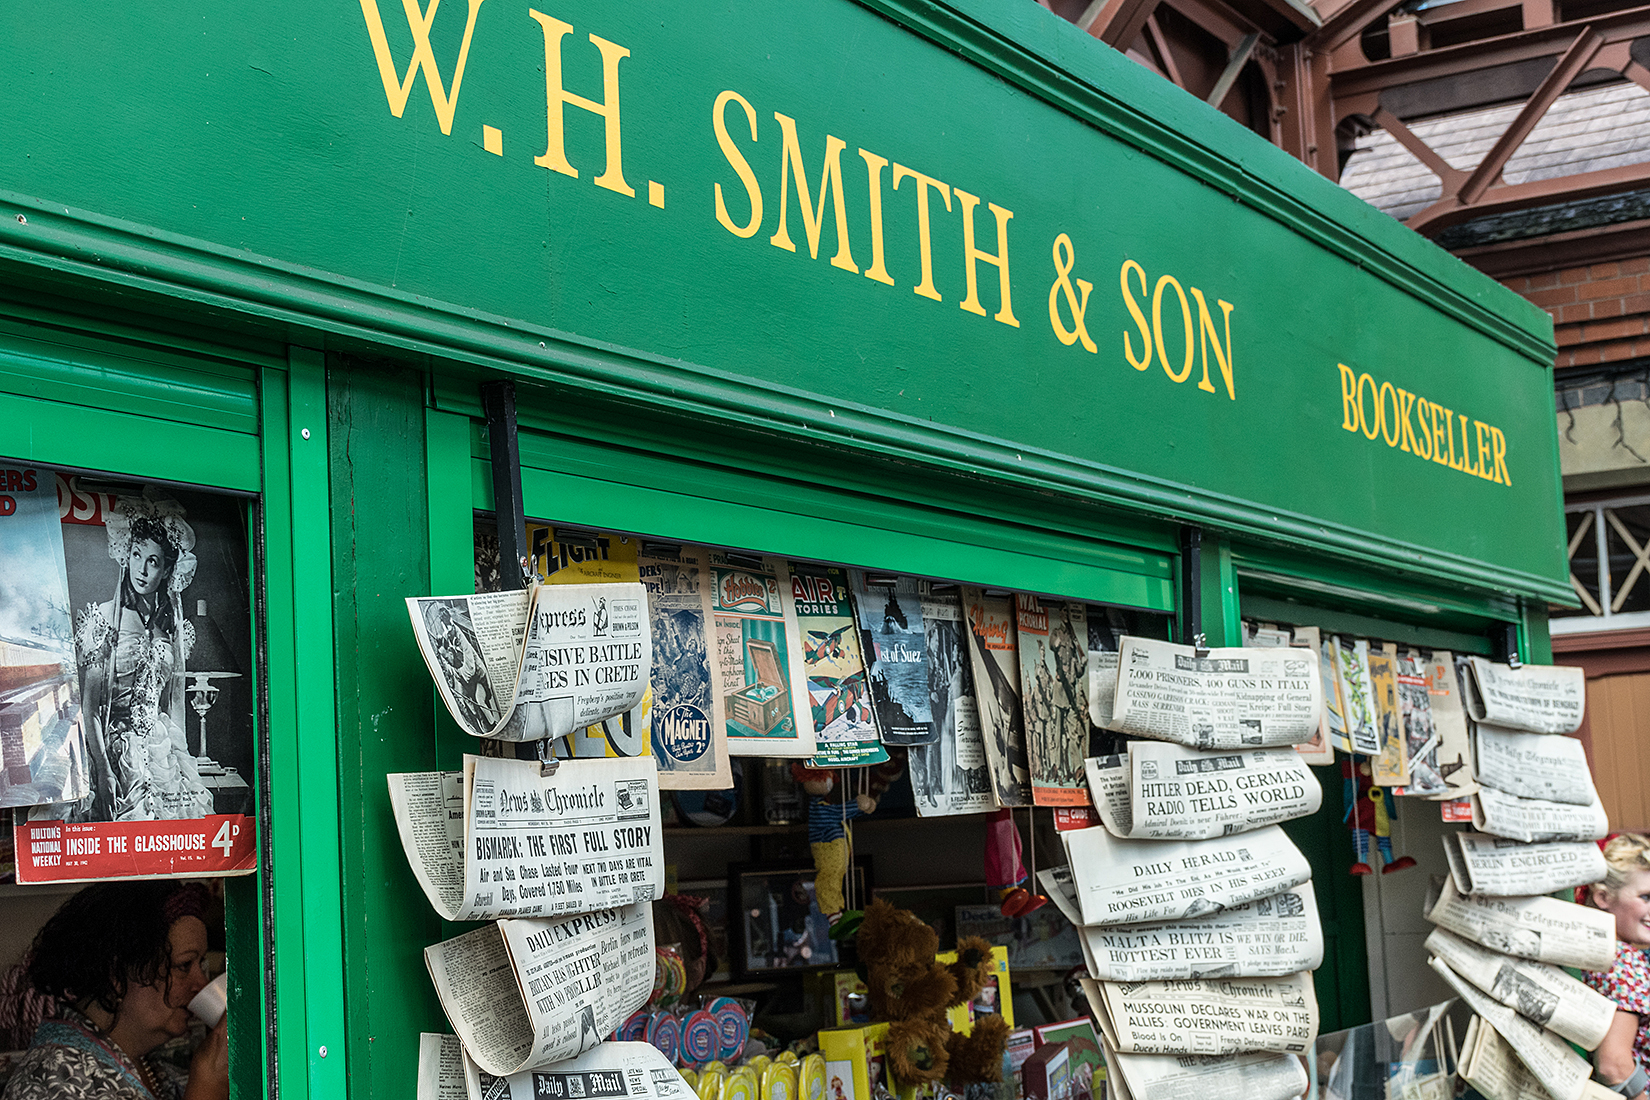 WH Smith & Son the bookseller